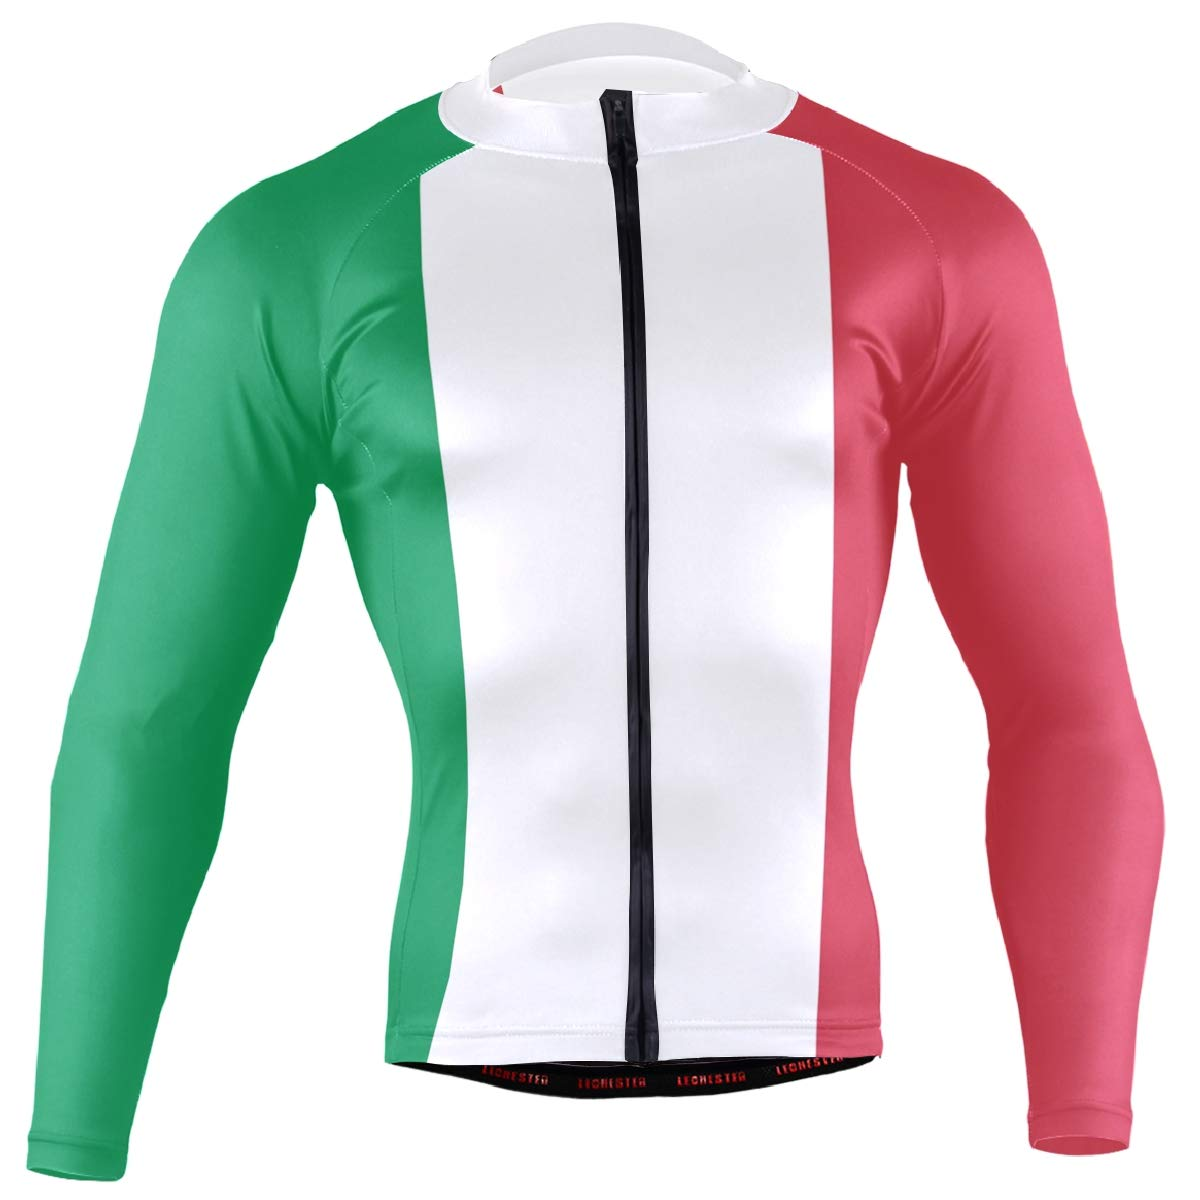 CHINEIN Men's Cycling Jersey Long Sleeve with 3 Rear Pockets Shirt Italy Flag